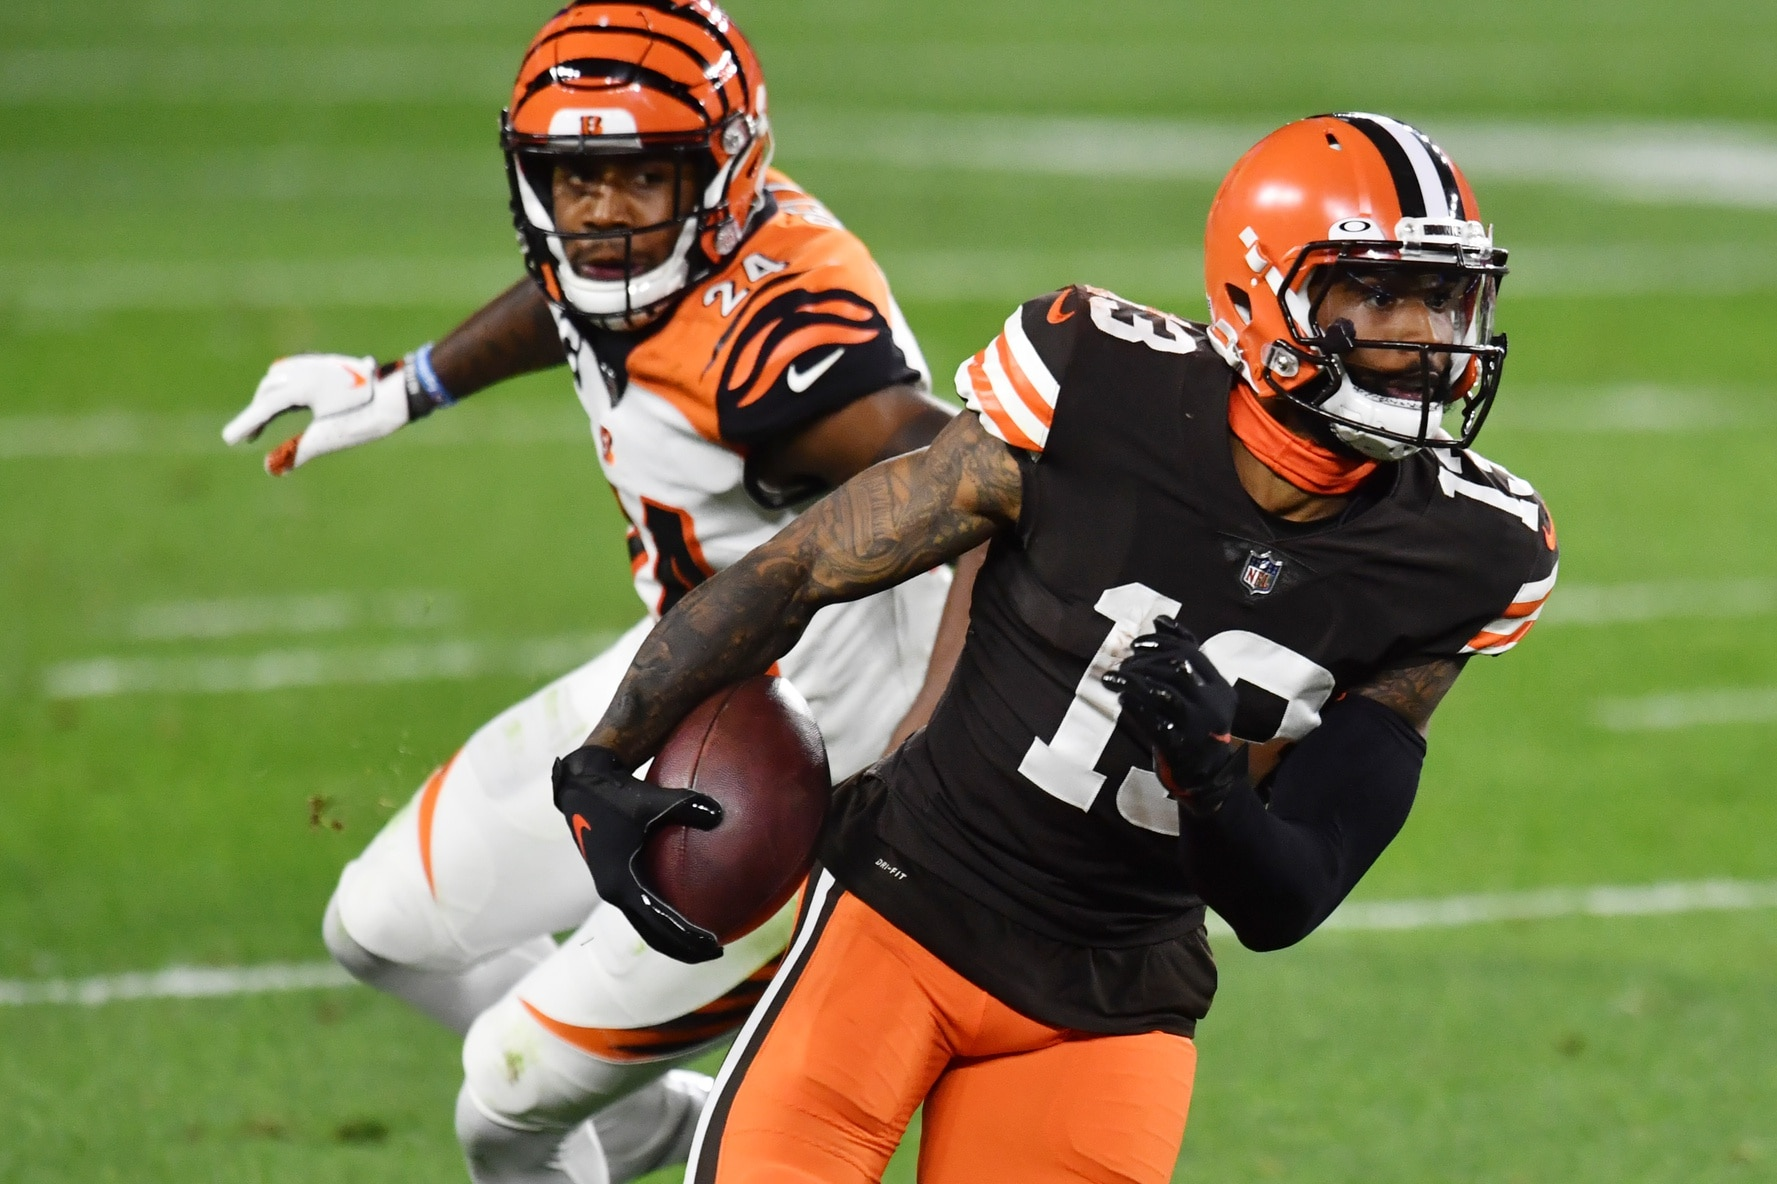 Nfl Ratings Bengals Browns Thursday Night Football Week 2 Ratings Offers Uncertainty For Nfl